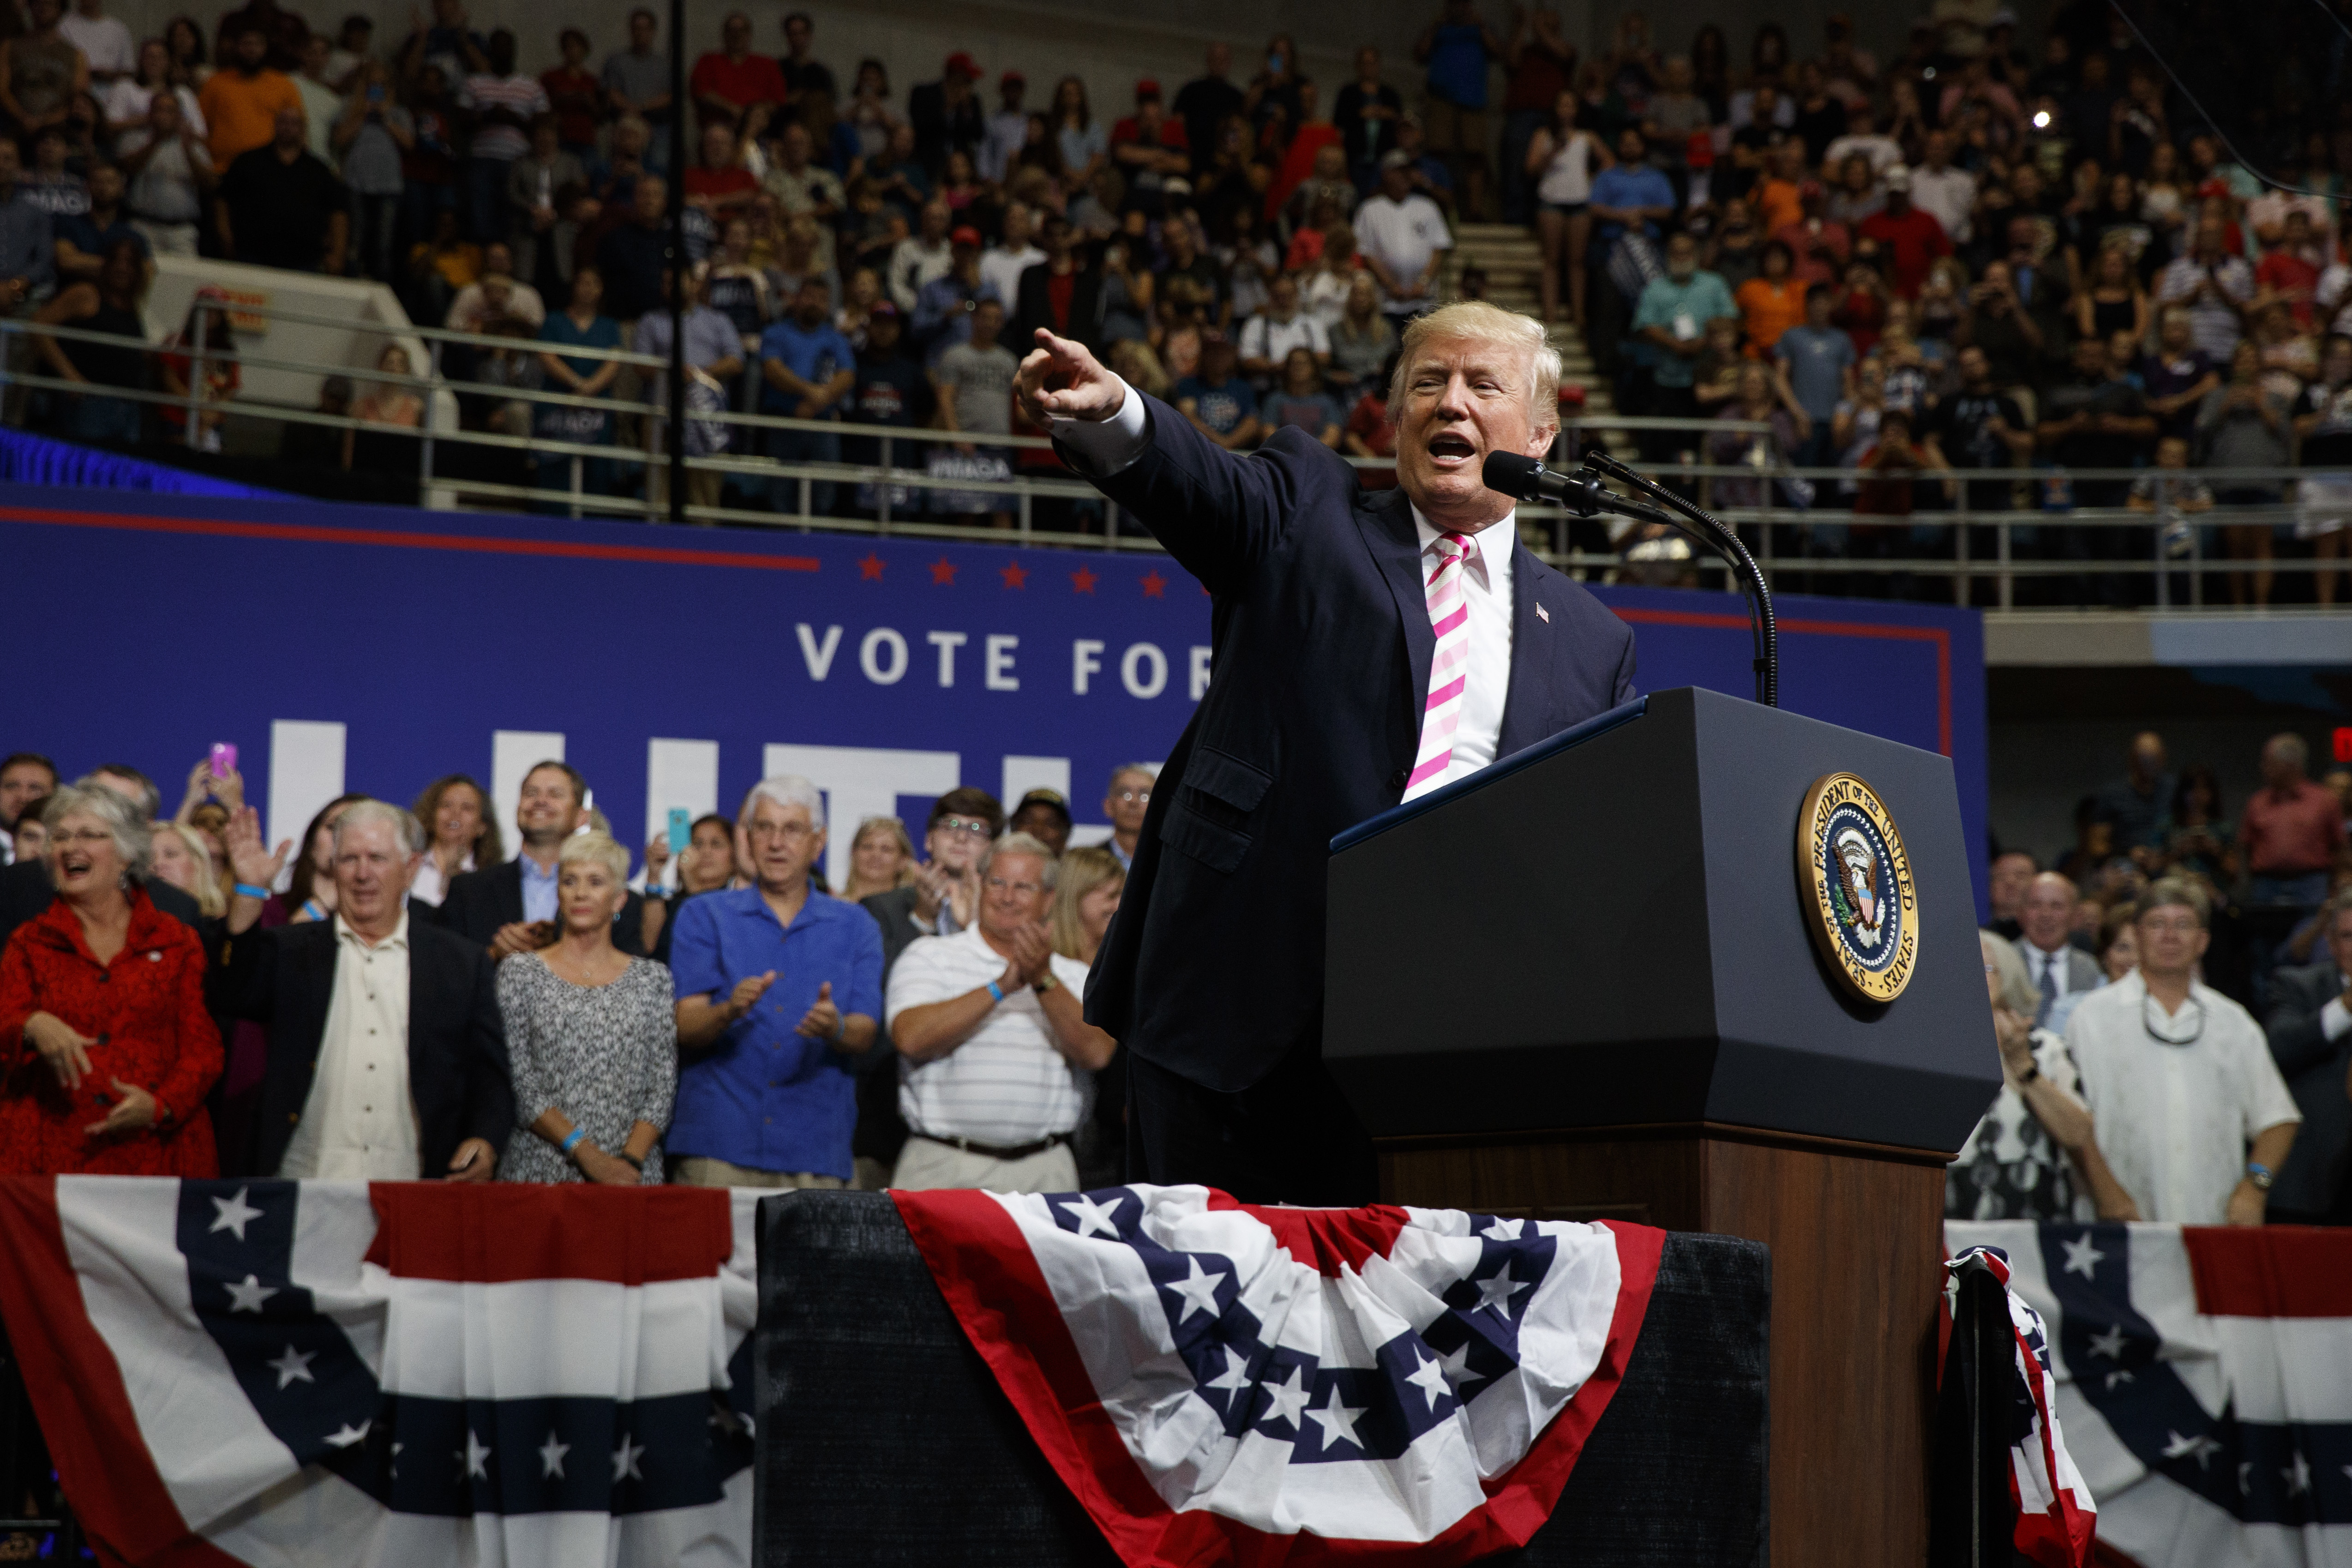 President Trump decries NFL player anthem protests, policing of hard hits in Alabama rally